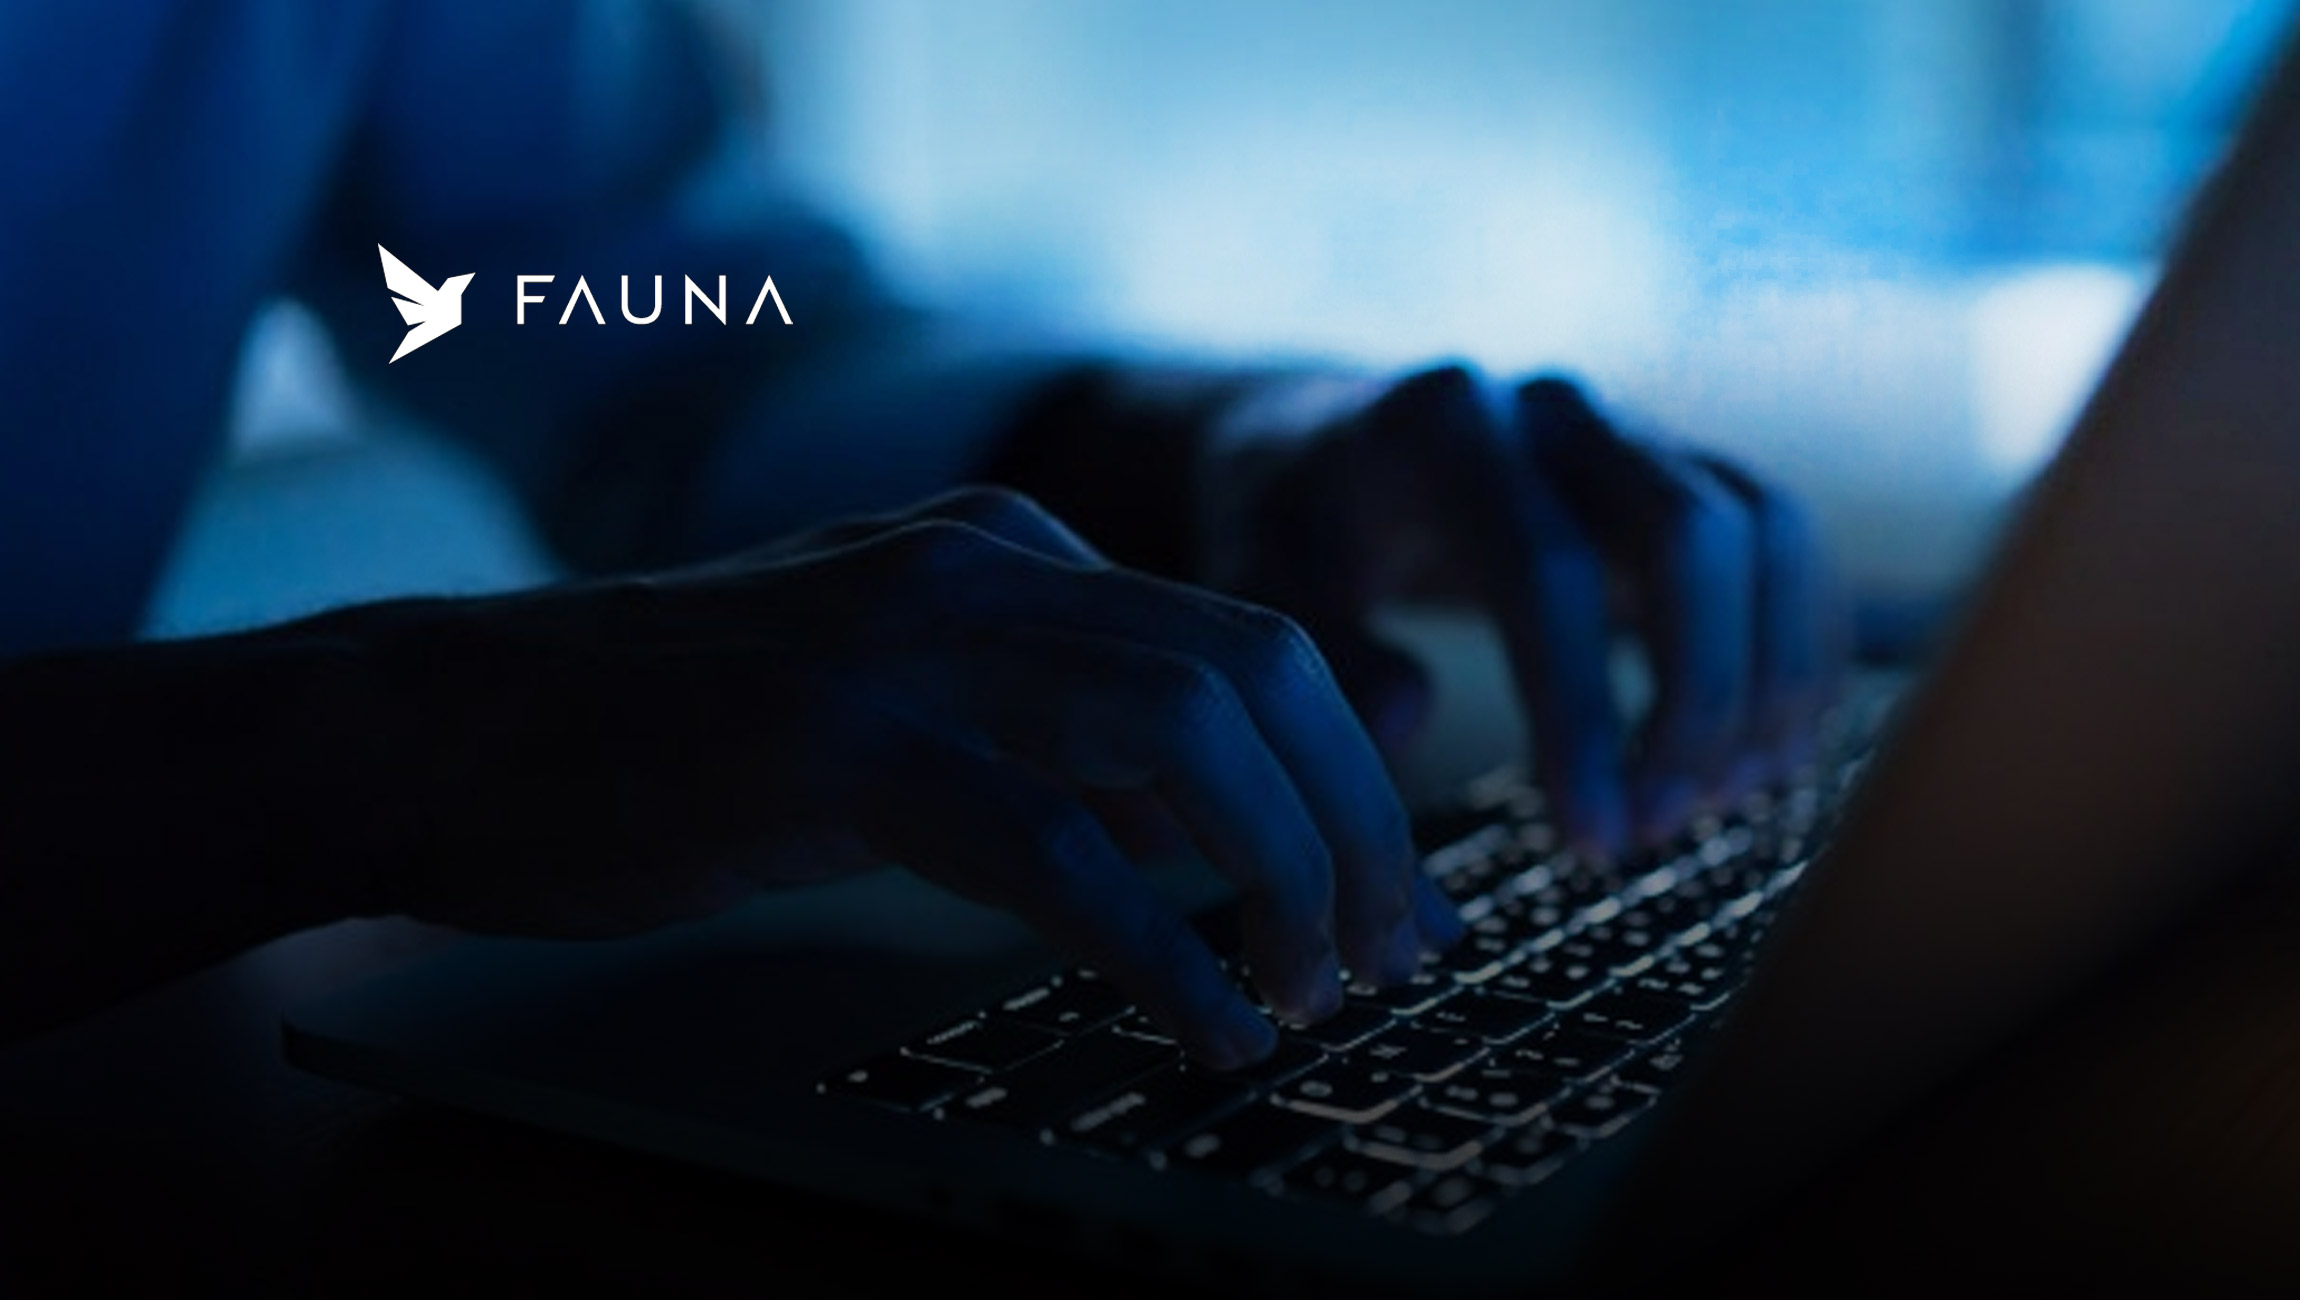 Fauna Introduces New Capabilities to Help Development Teams Collaborate and Build More Secure and Responsive Business Applications